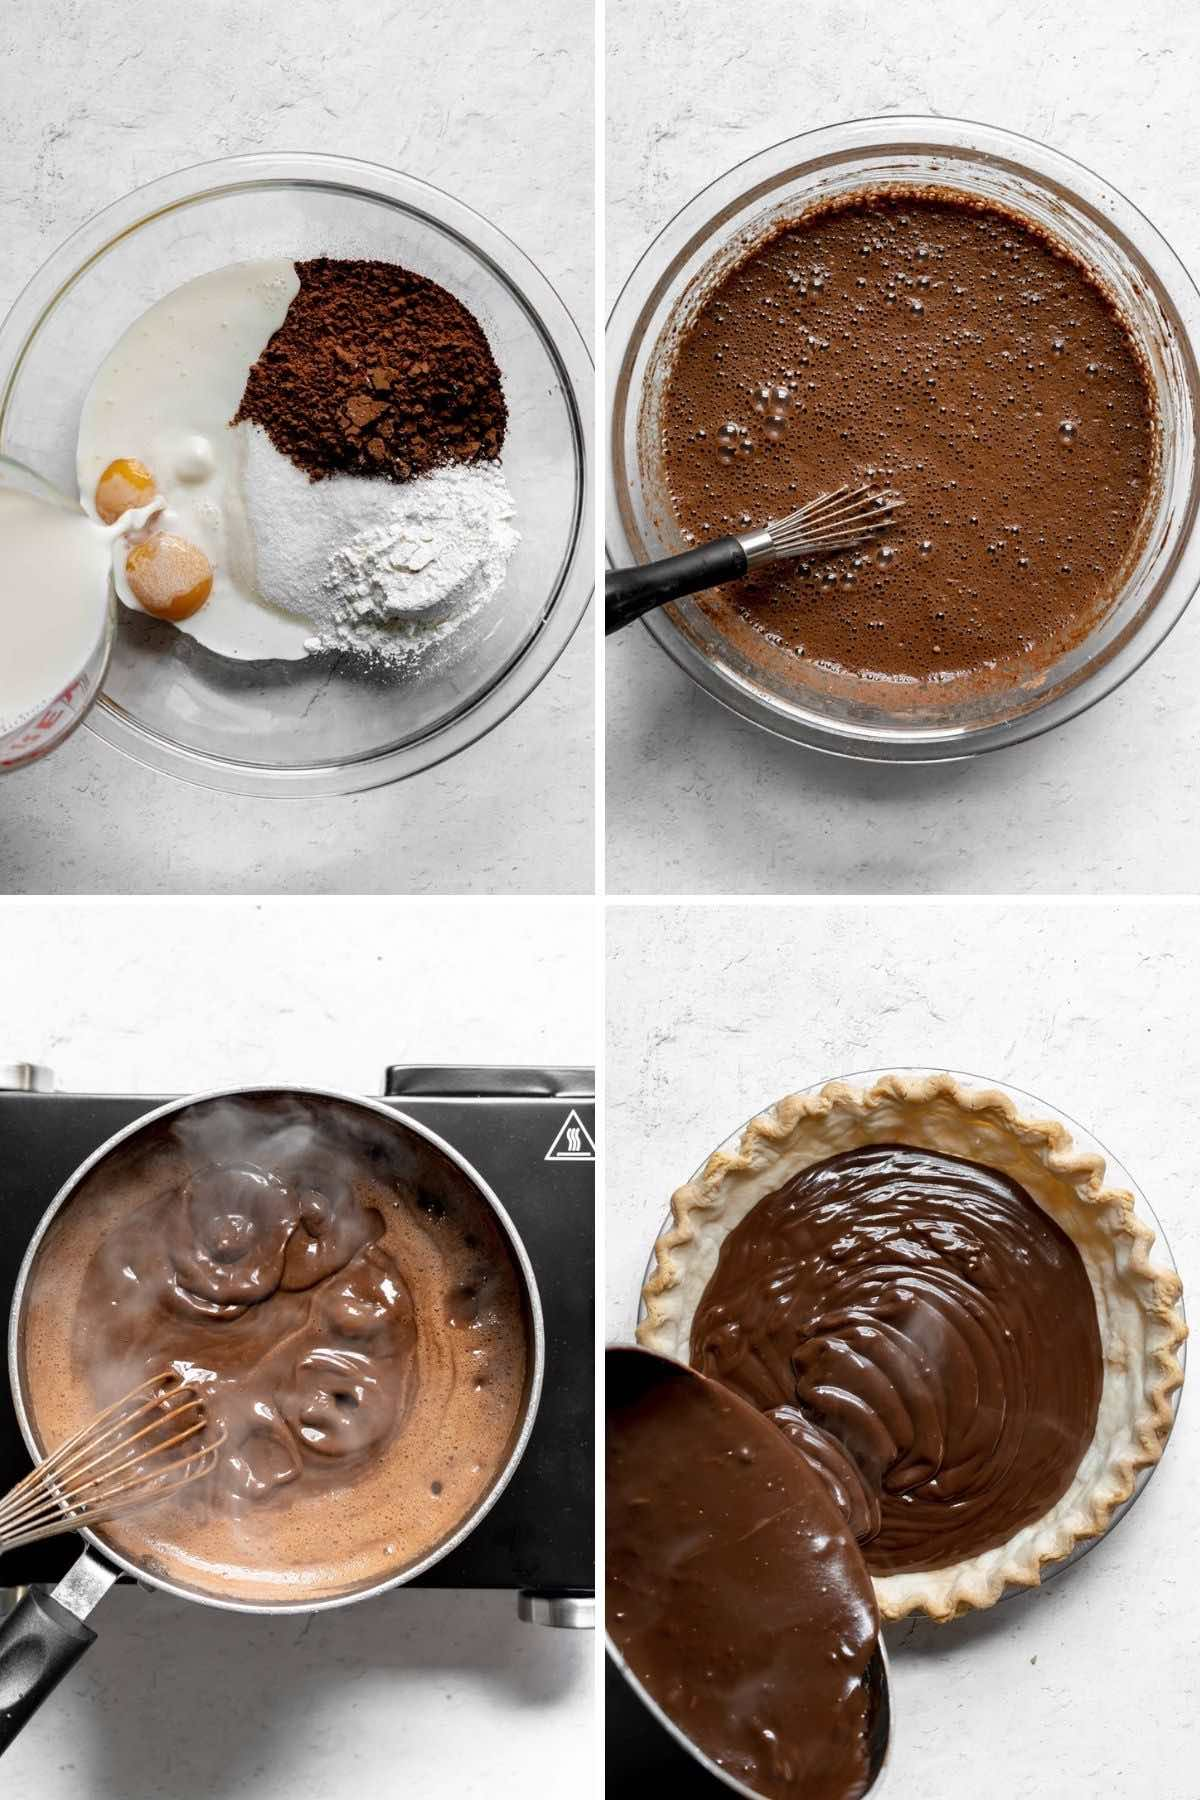 Collage of prep steps for Chocolate Cream Pie